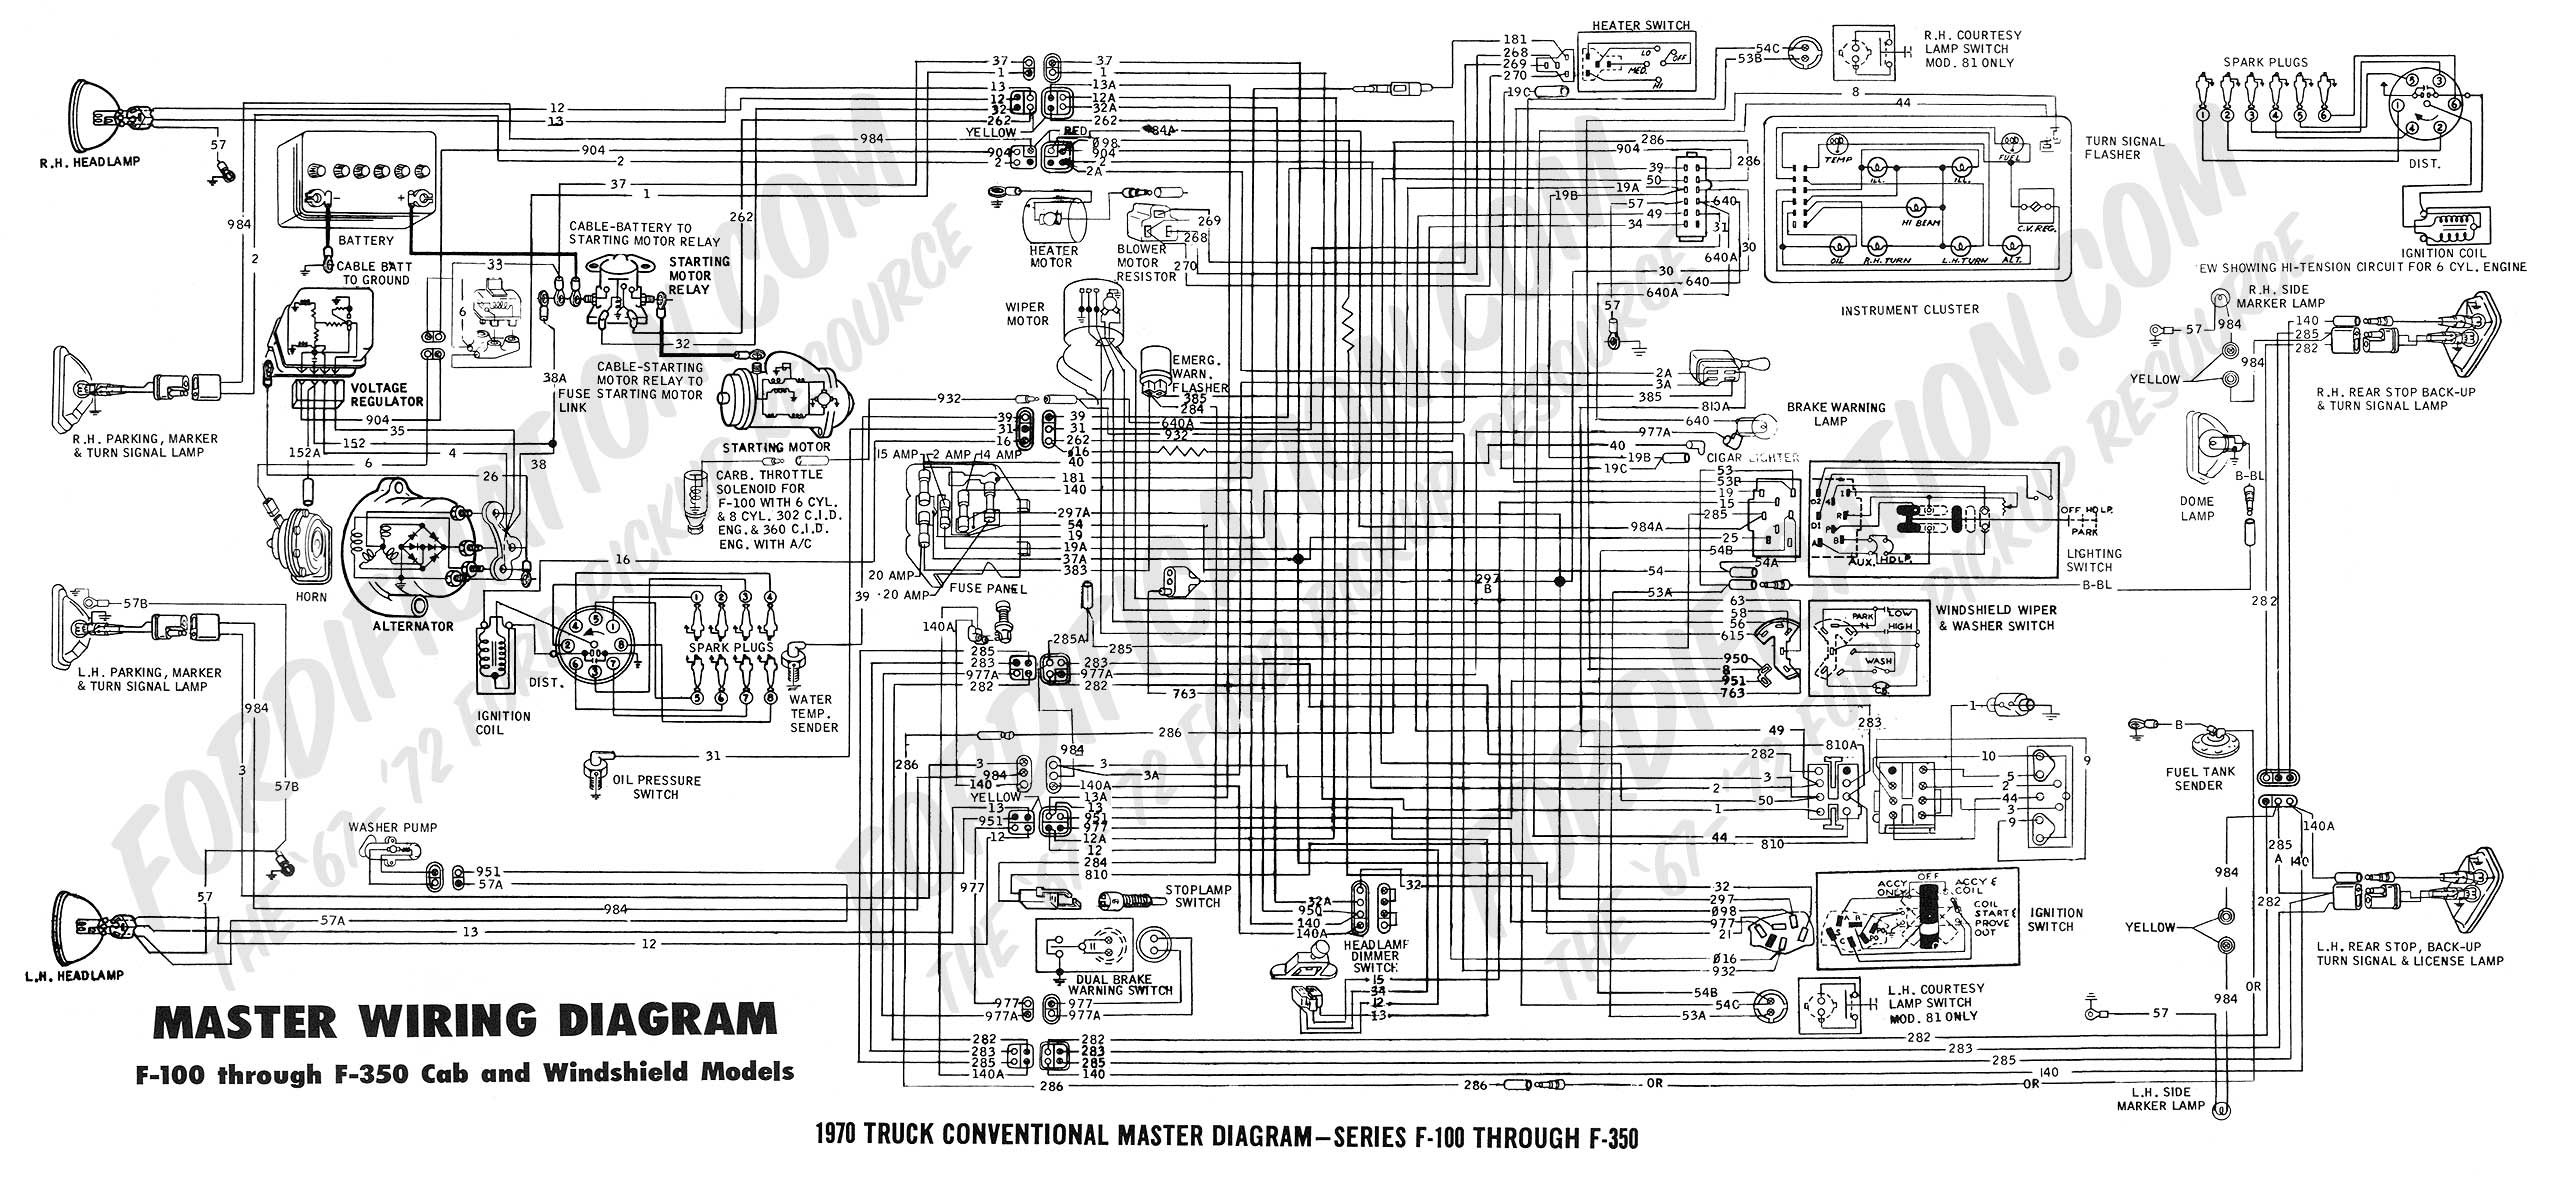 1978 Ford F800 Wiring Diagram Libraries 2000 Expedition Ipdm Schematic Third Level1989 Completed Diagrams 1998